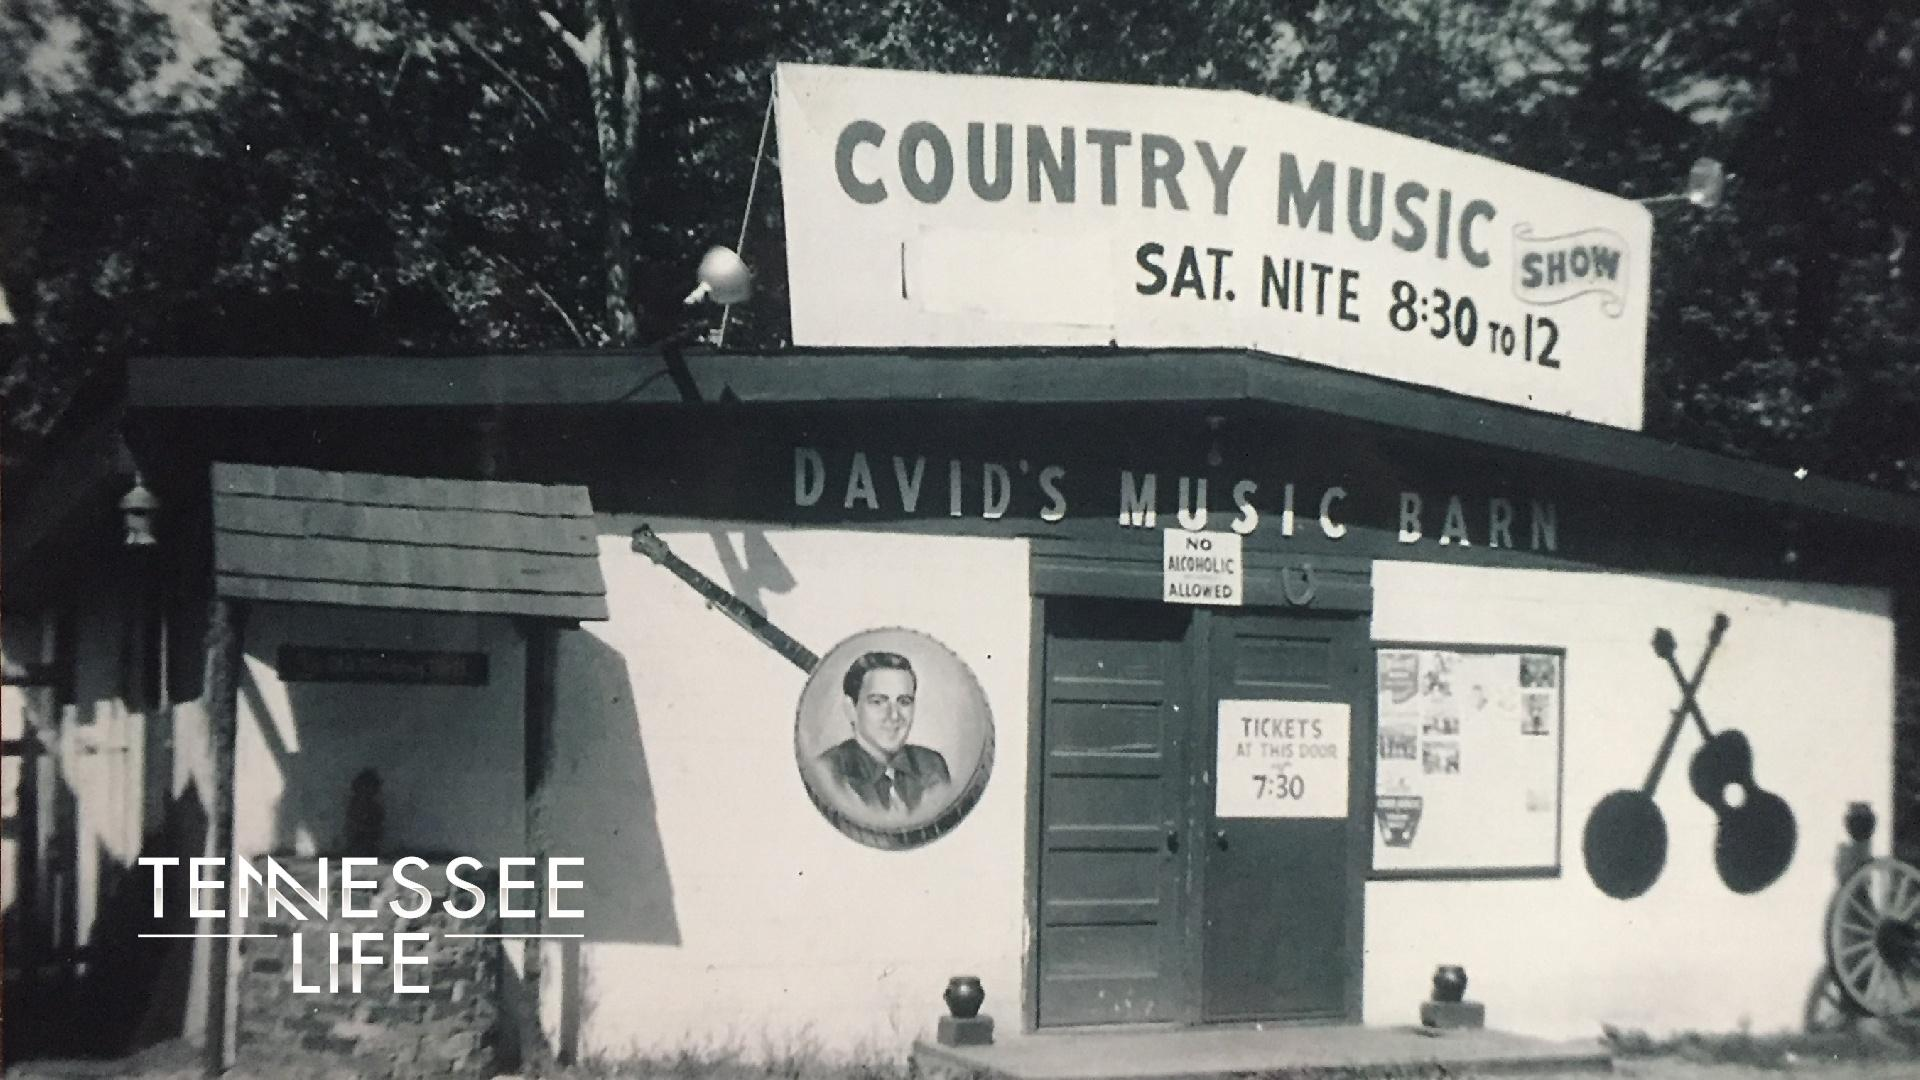 Tennessee Life - 511 - Country Music Roots